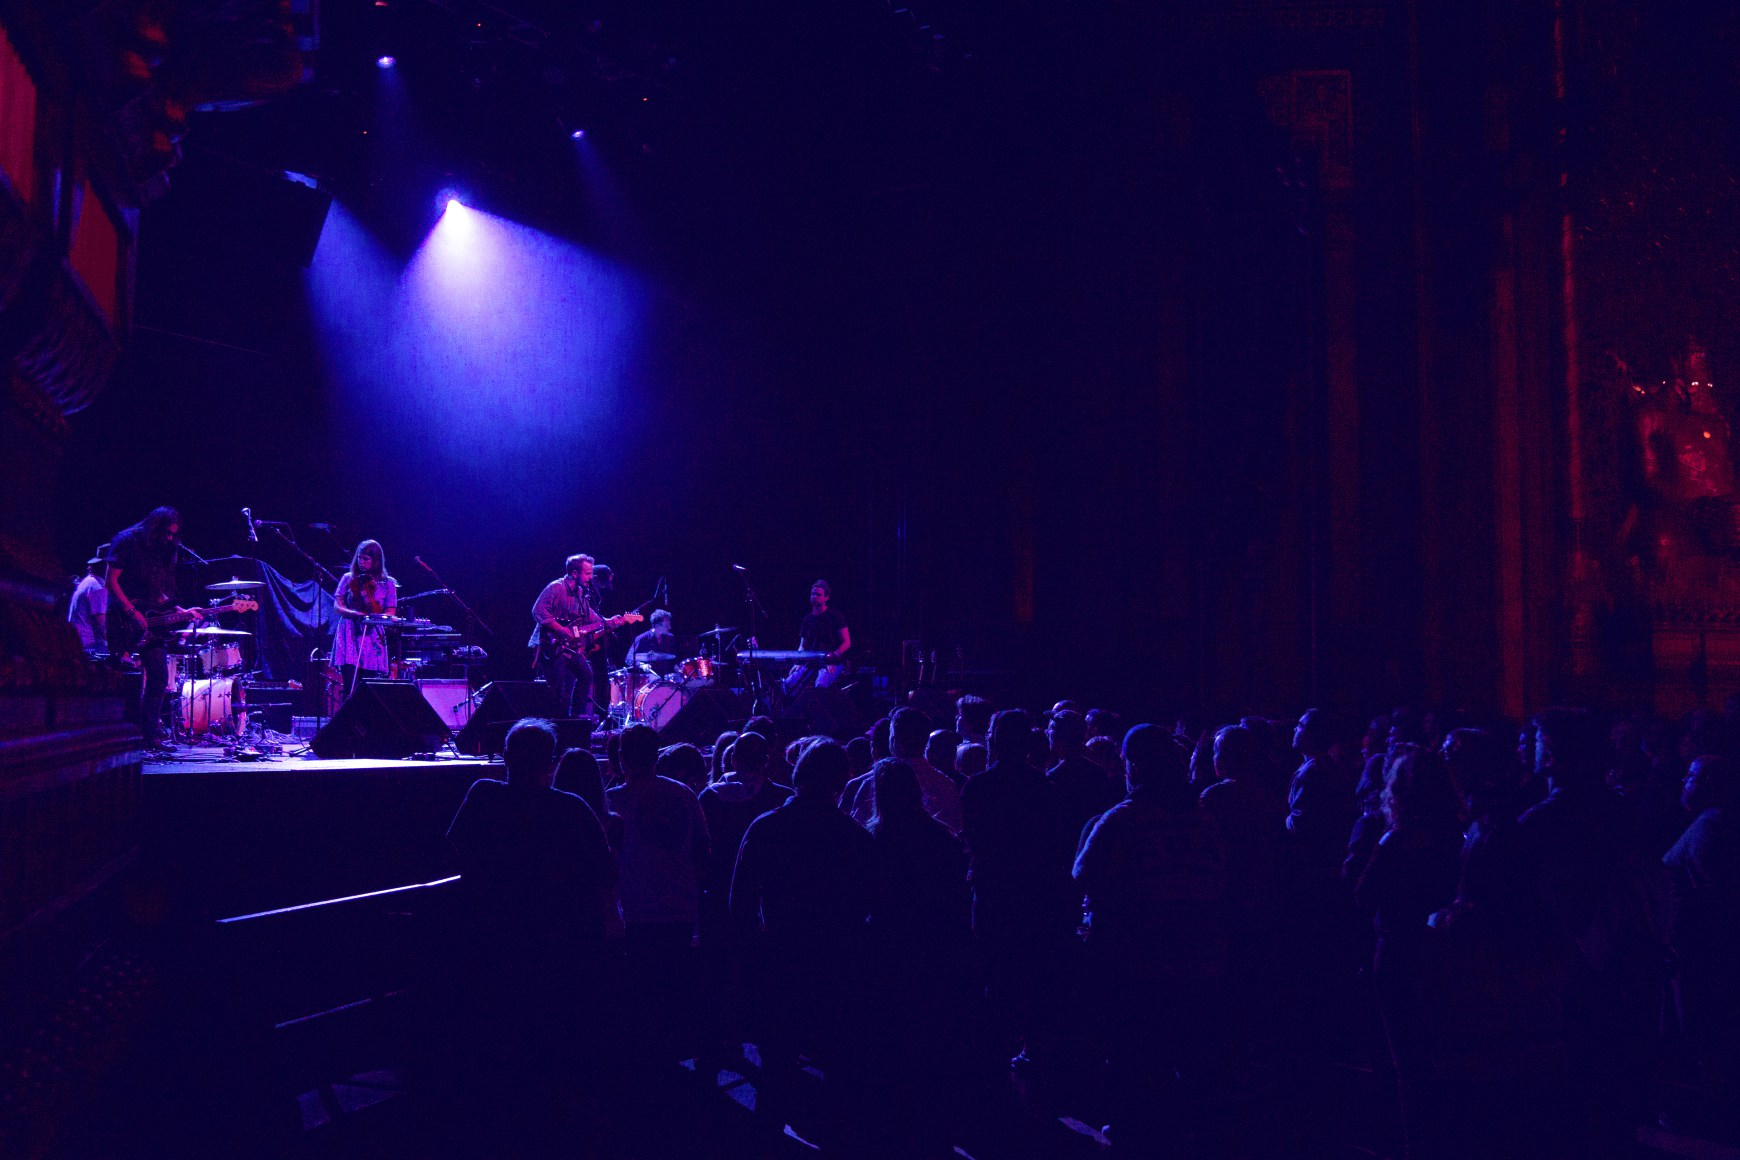 Typhoon performs at The Fox Theatre in San Francisco, CA.